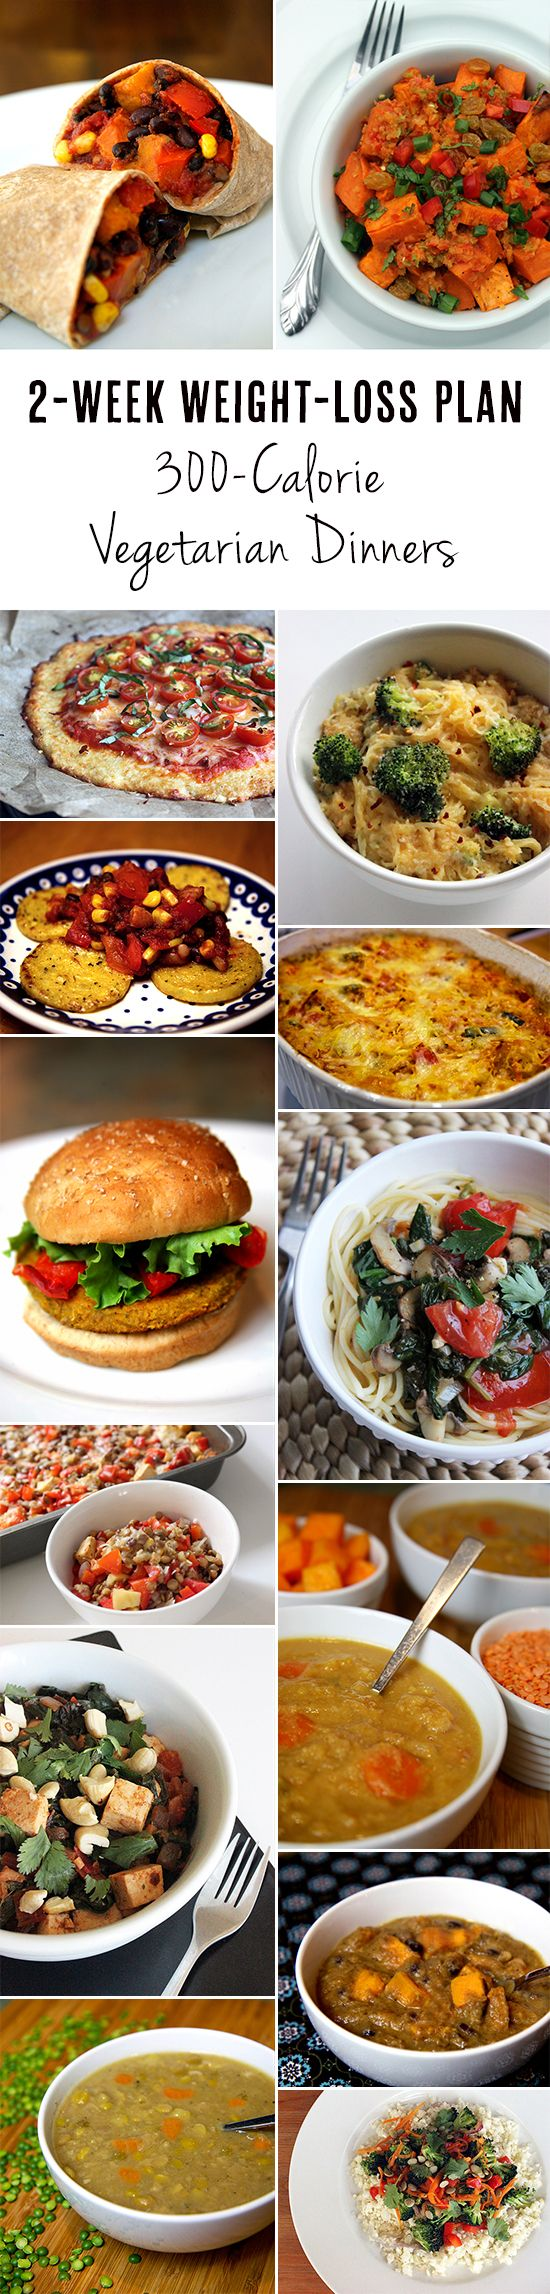 2 week weight loss plan vegetarian dinners under 300 calories 2 week weight loss plan vegetarian dinners under 300 calories 300 calories weight loss plans and dinners forumfinder